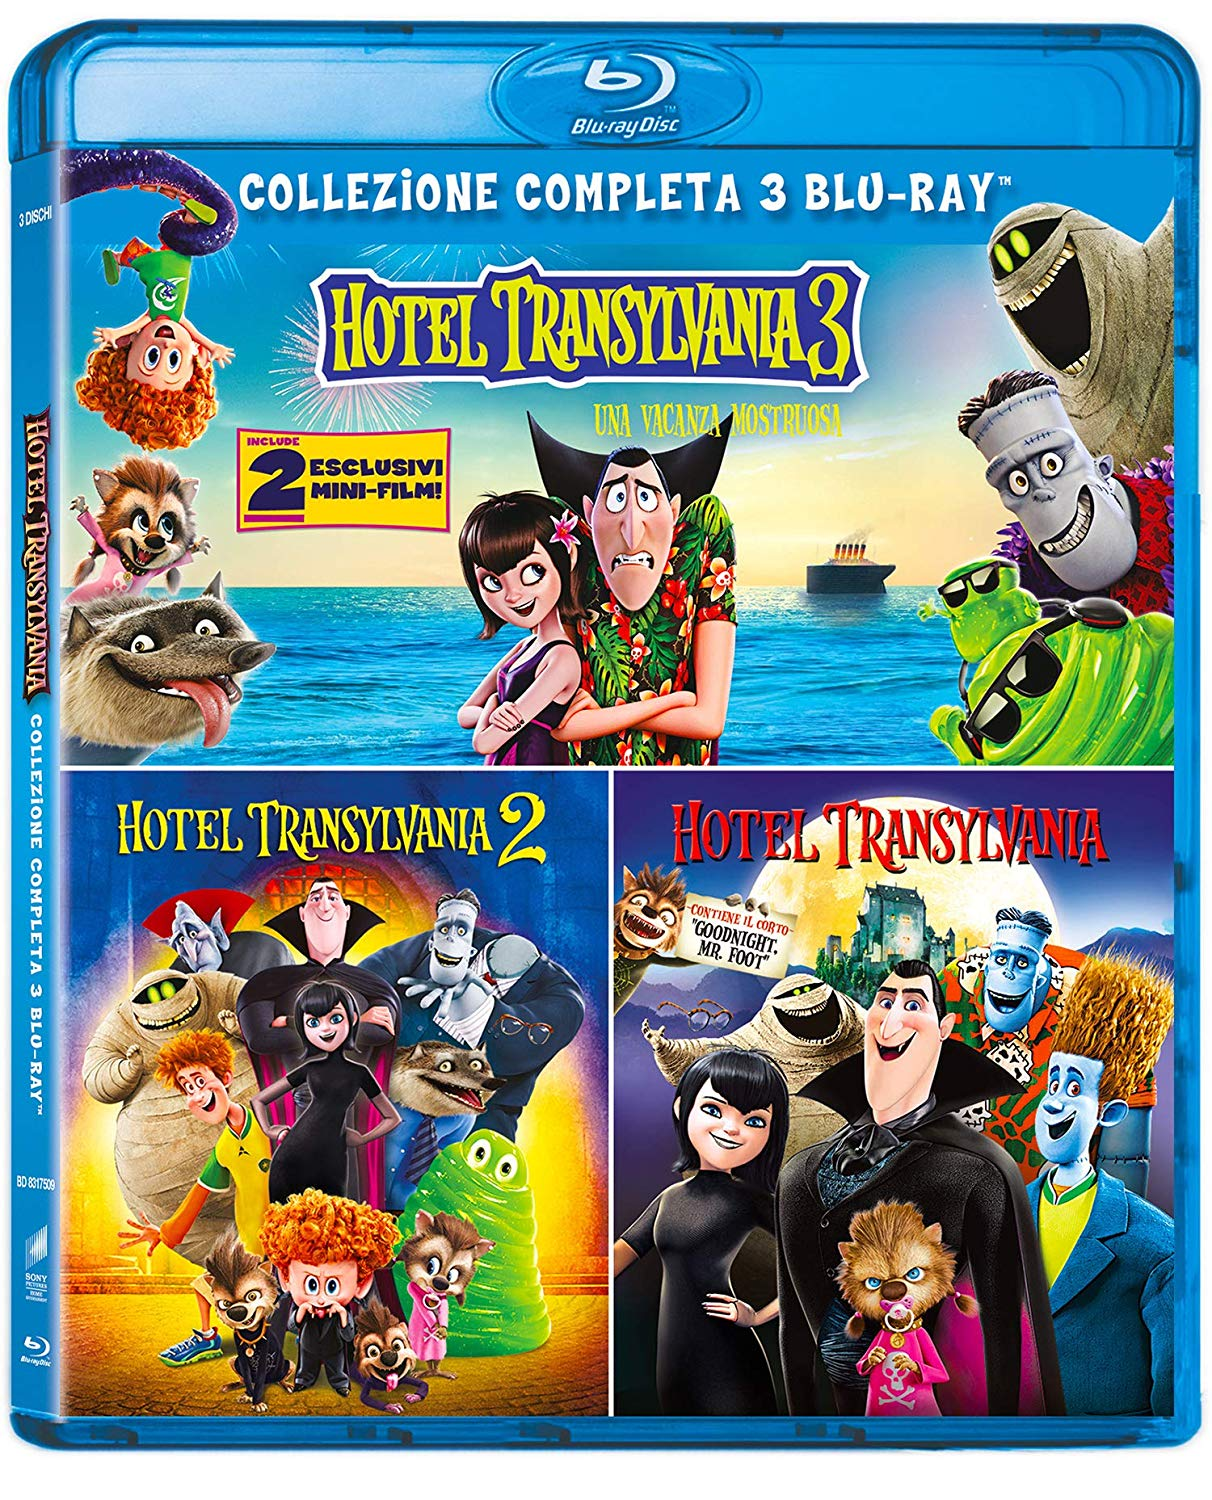 COF.HOTEL TRANSYLVANIA COLLECTION (3 BLU-RAY)